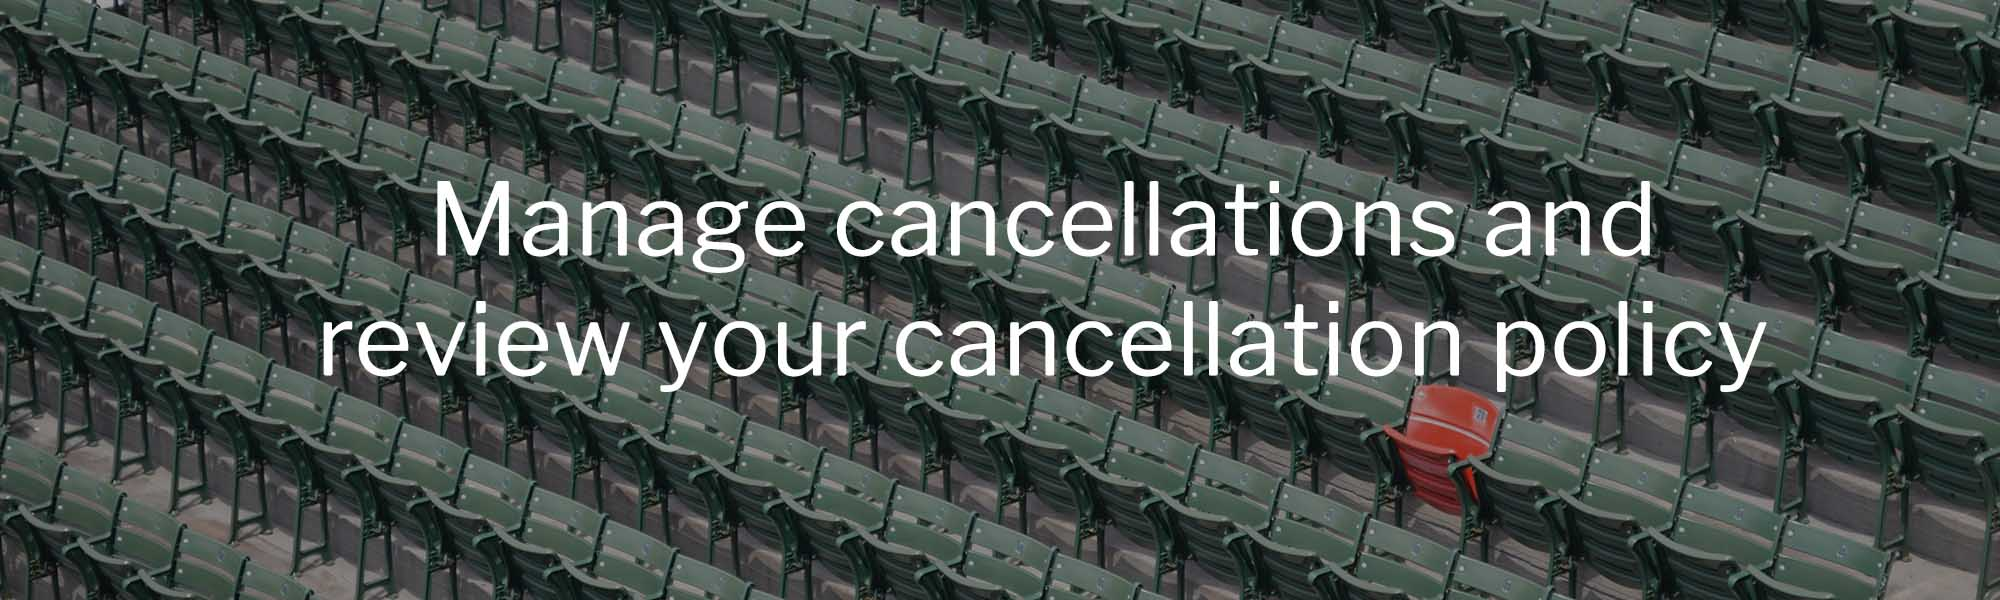 how to manage cancellations